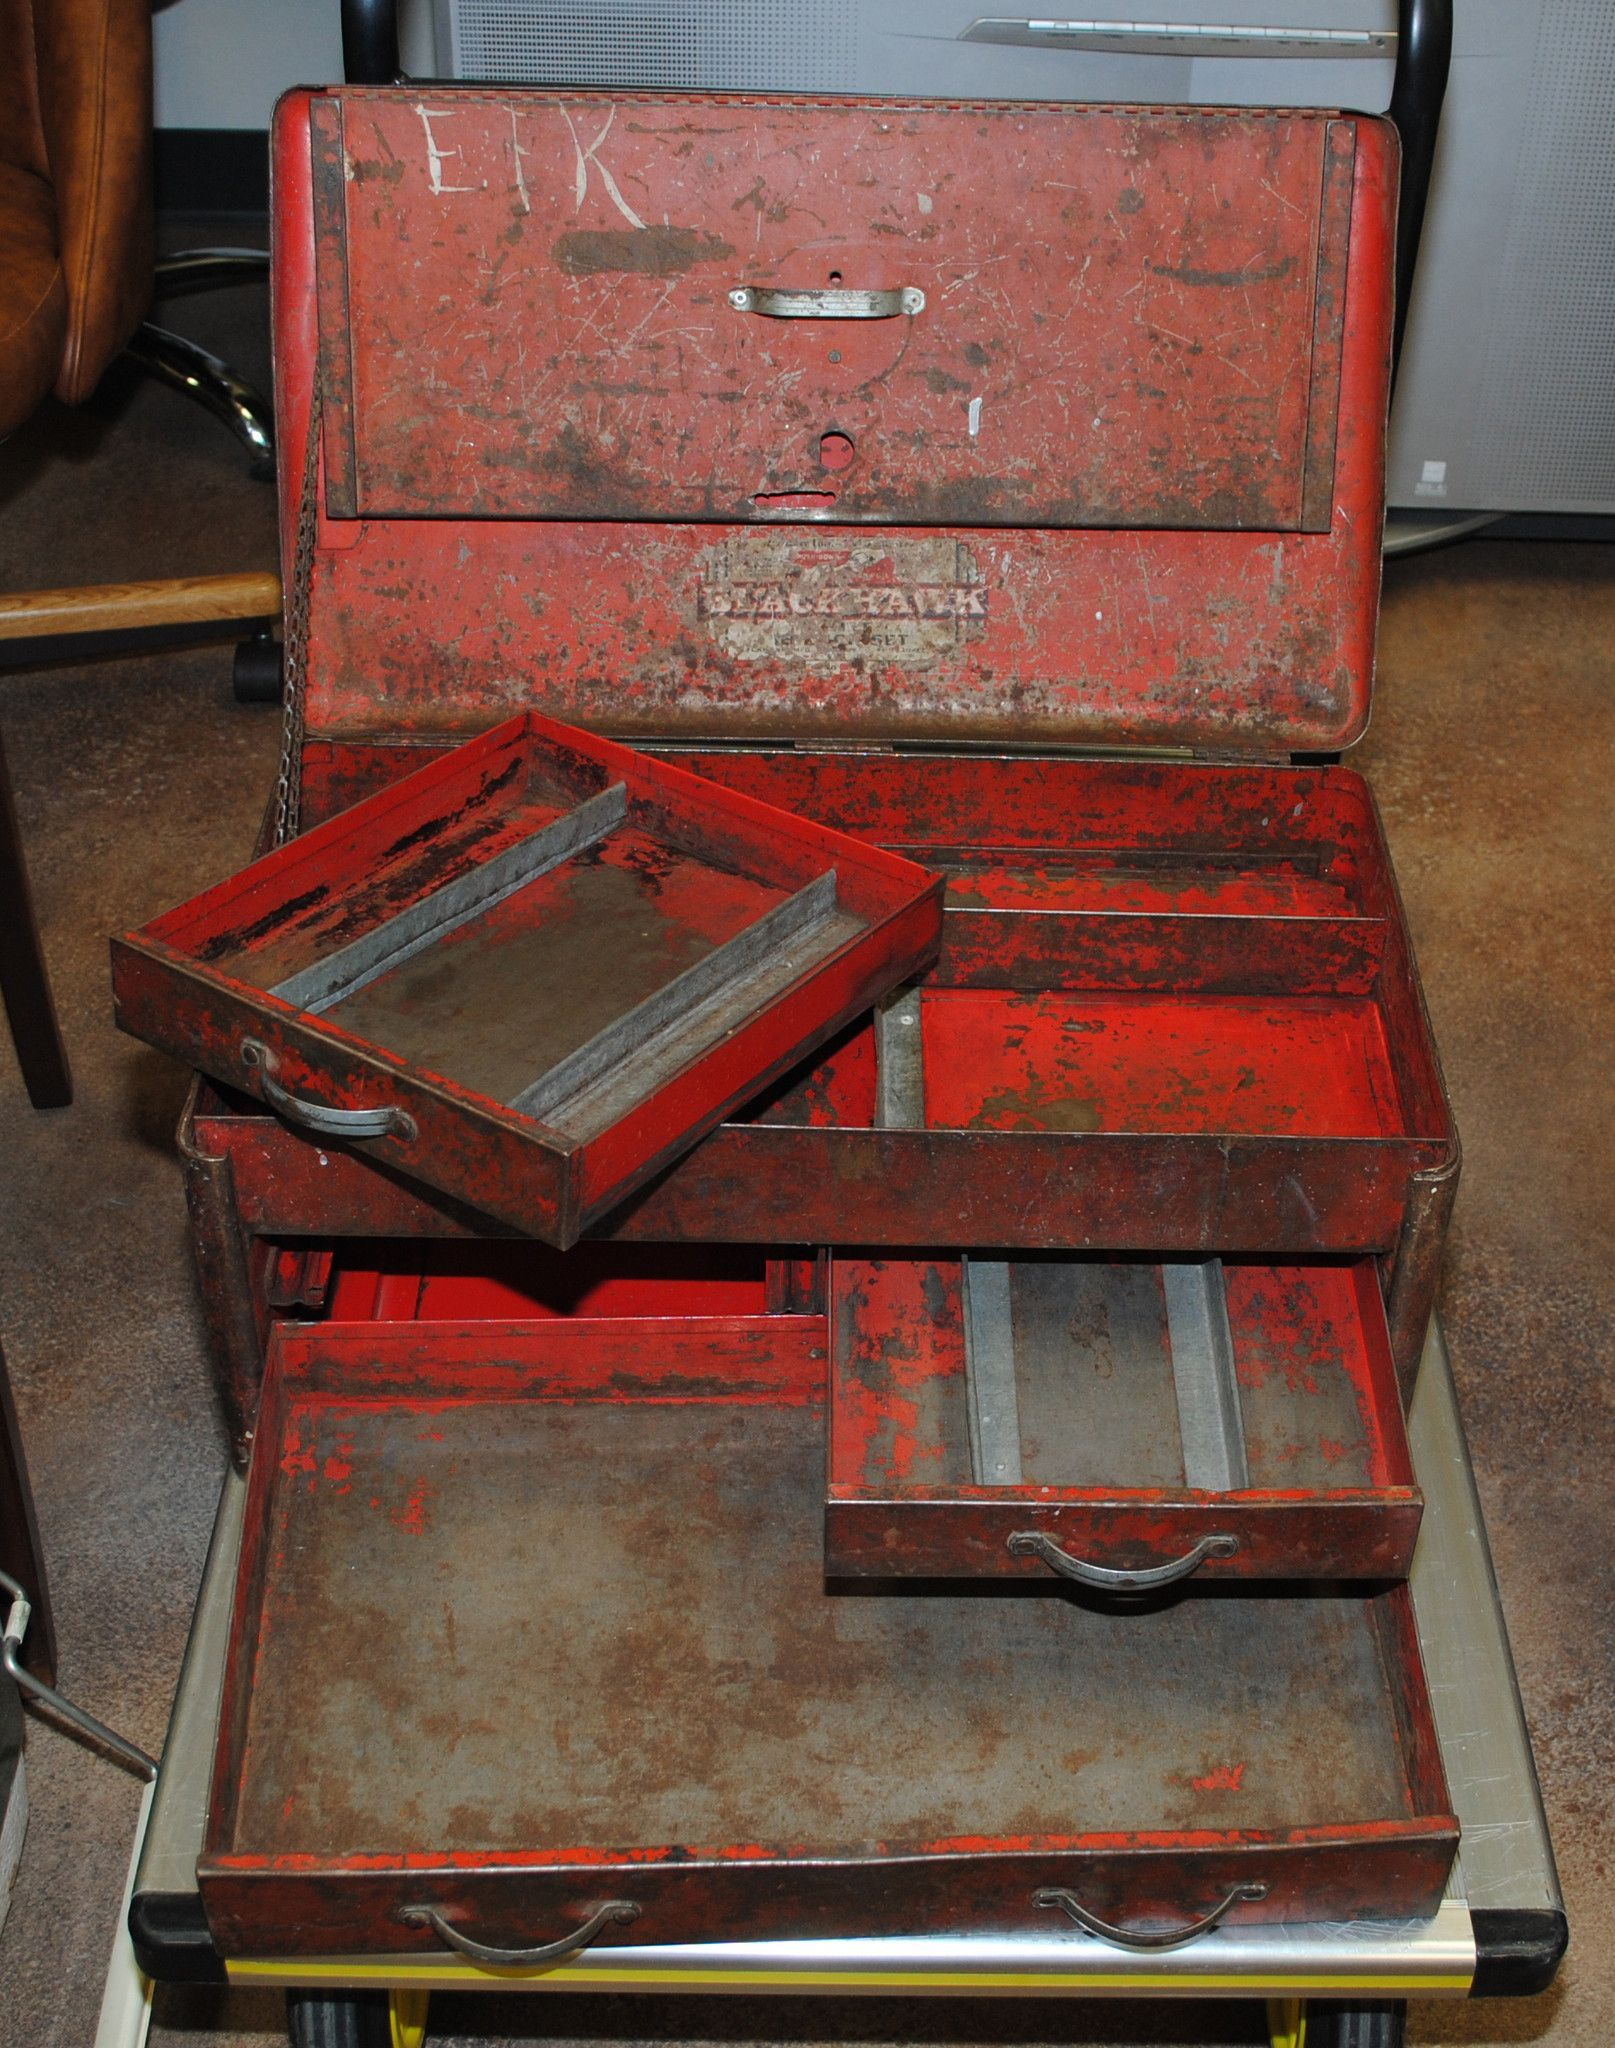 Blackhawk Tool Box : blackhawk, Workshop